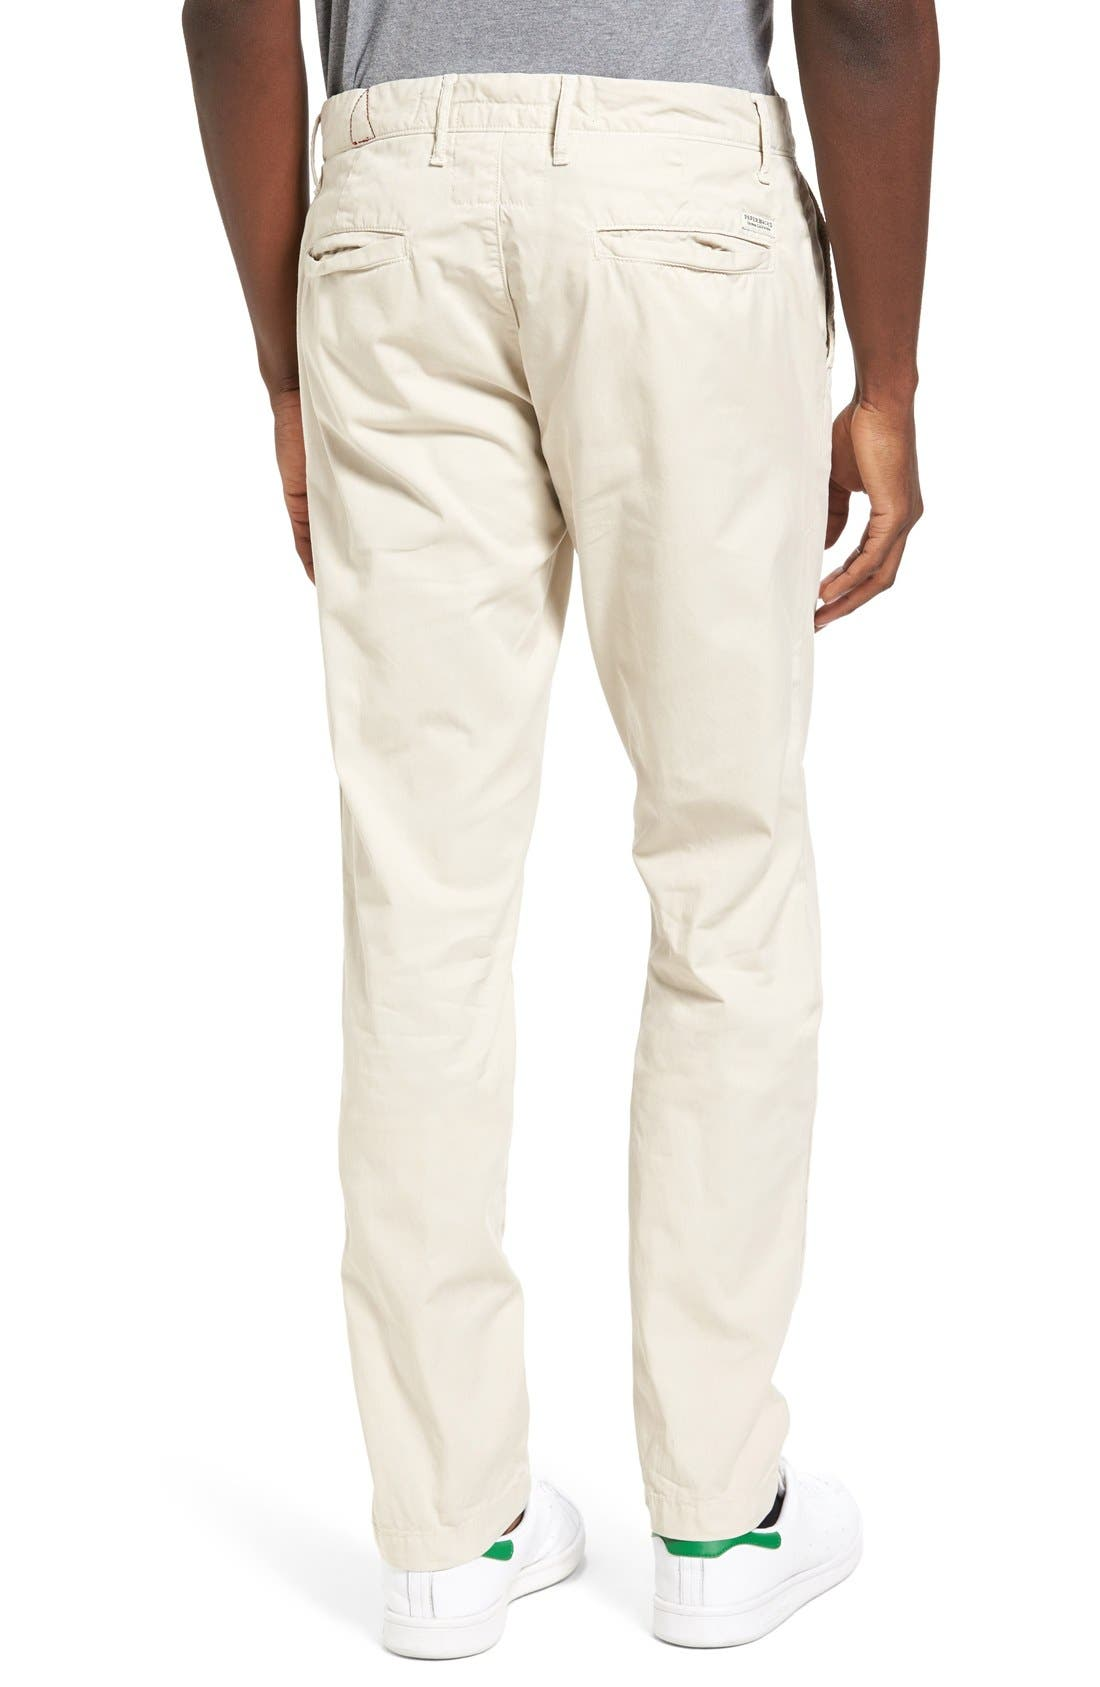 Mason Chino Pants,                             Alternate thumbnail 2, color,                             String